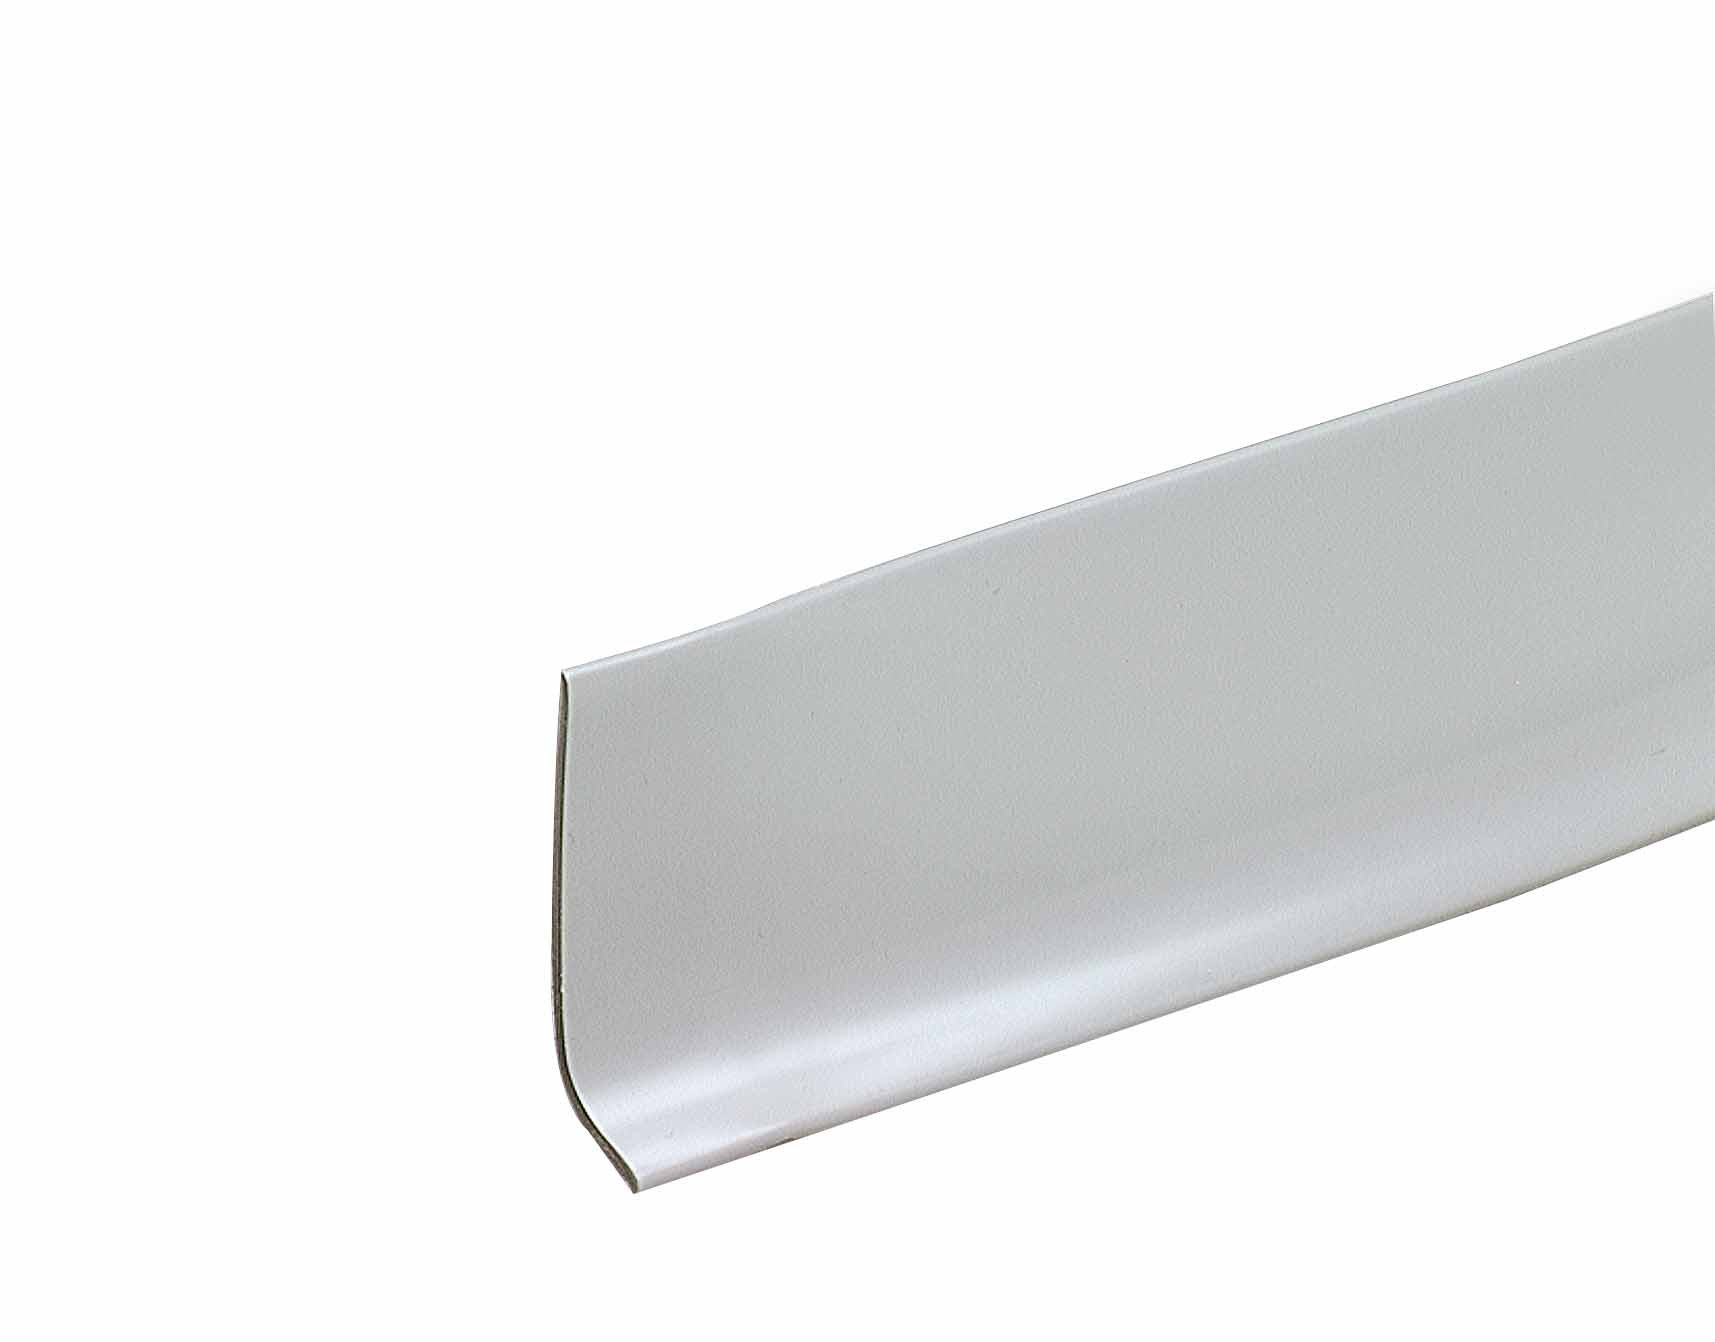 M-D Building Products 75671 2-1/2-Inch by 4-Feet Dry Back Vinyl Wall Base, Silver Gray